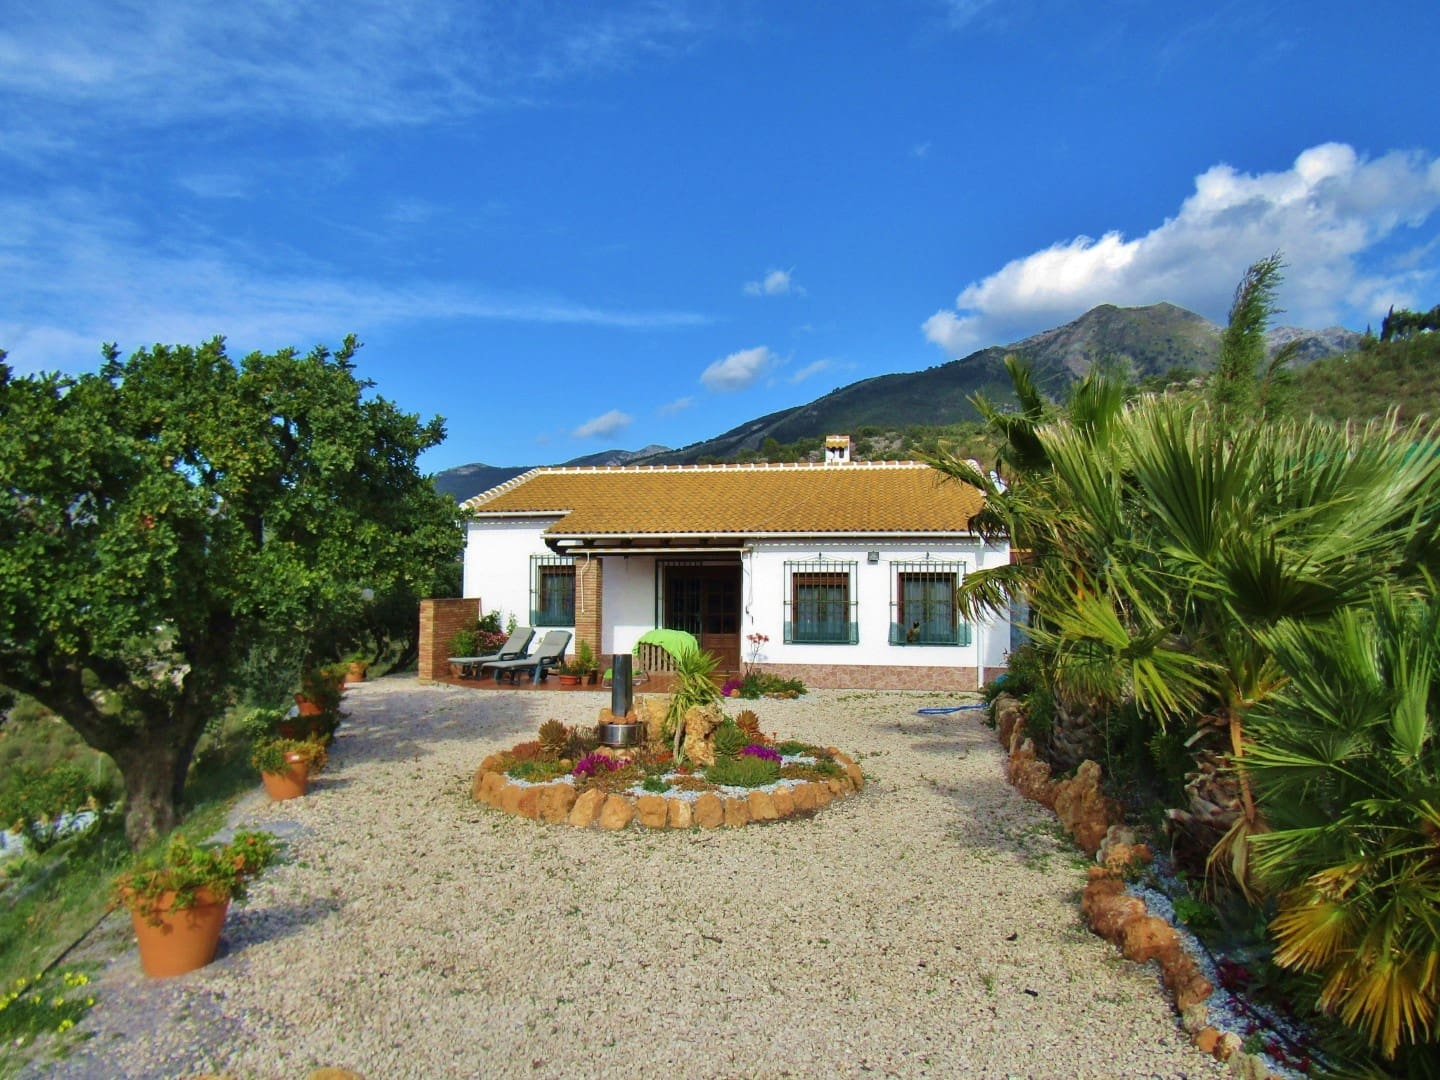 2 bedroom Finca/Country House for sale in Alcaucin - € 159,000 (Ref: 5161993)